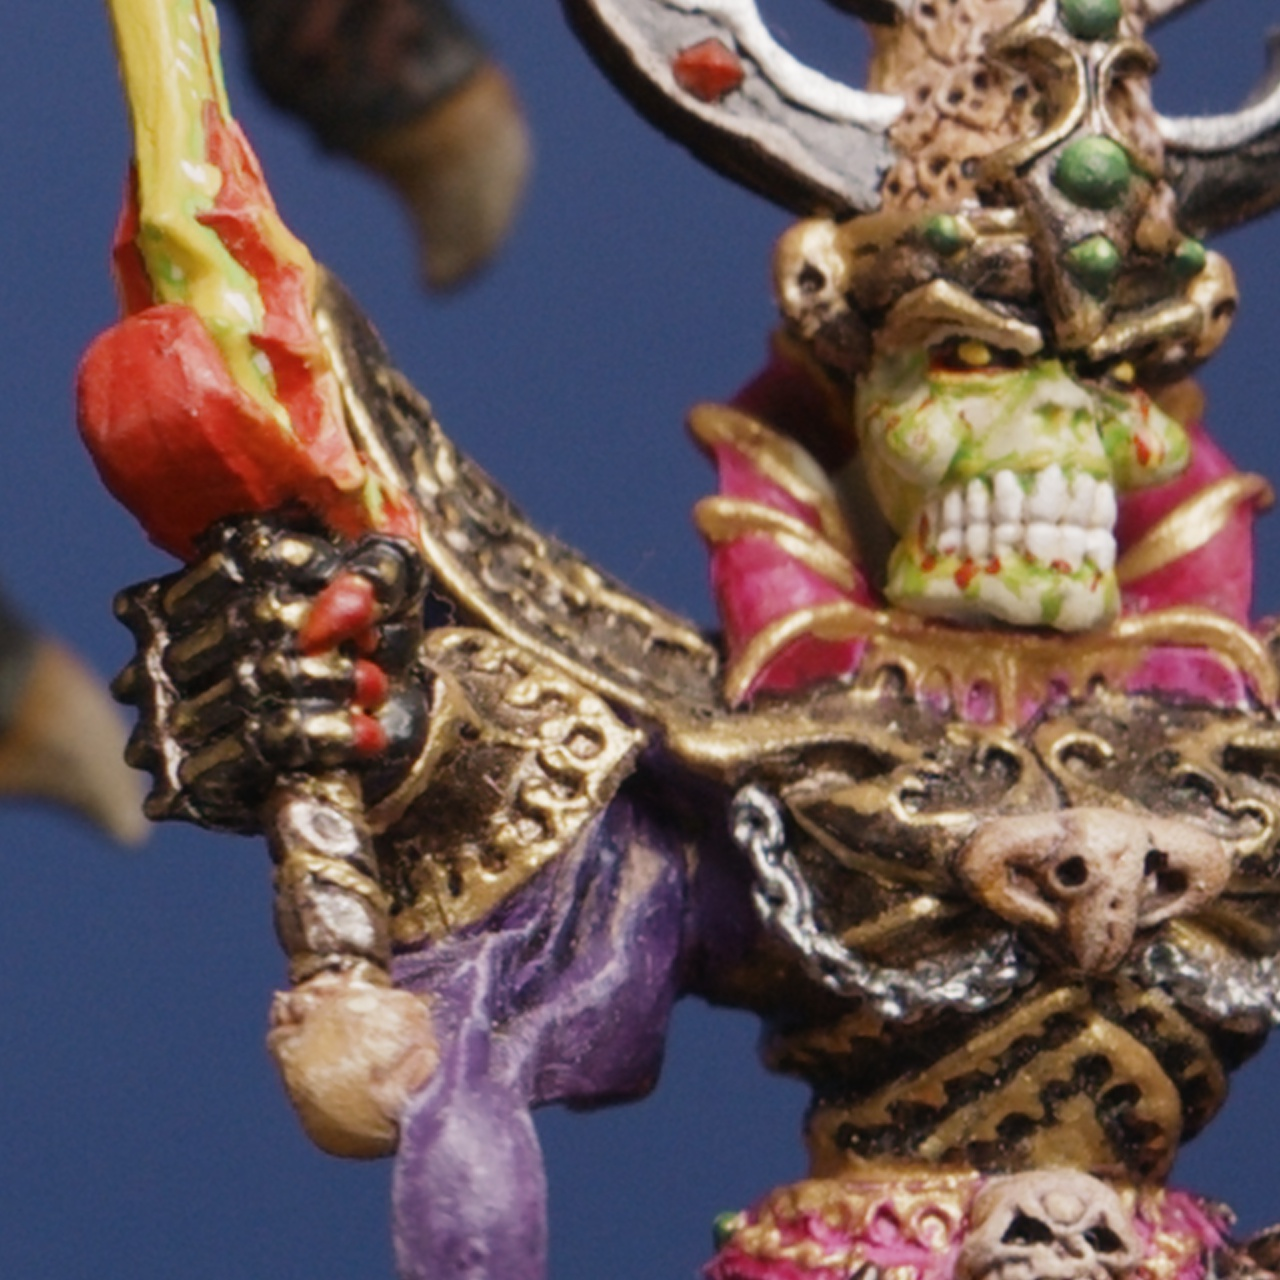 Minatures_Detail1_BRAW.jpg